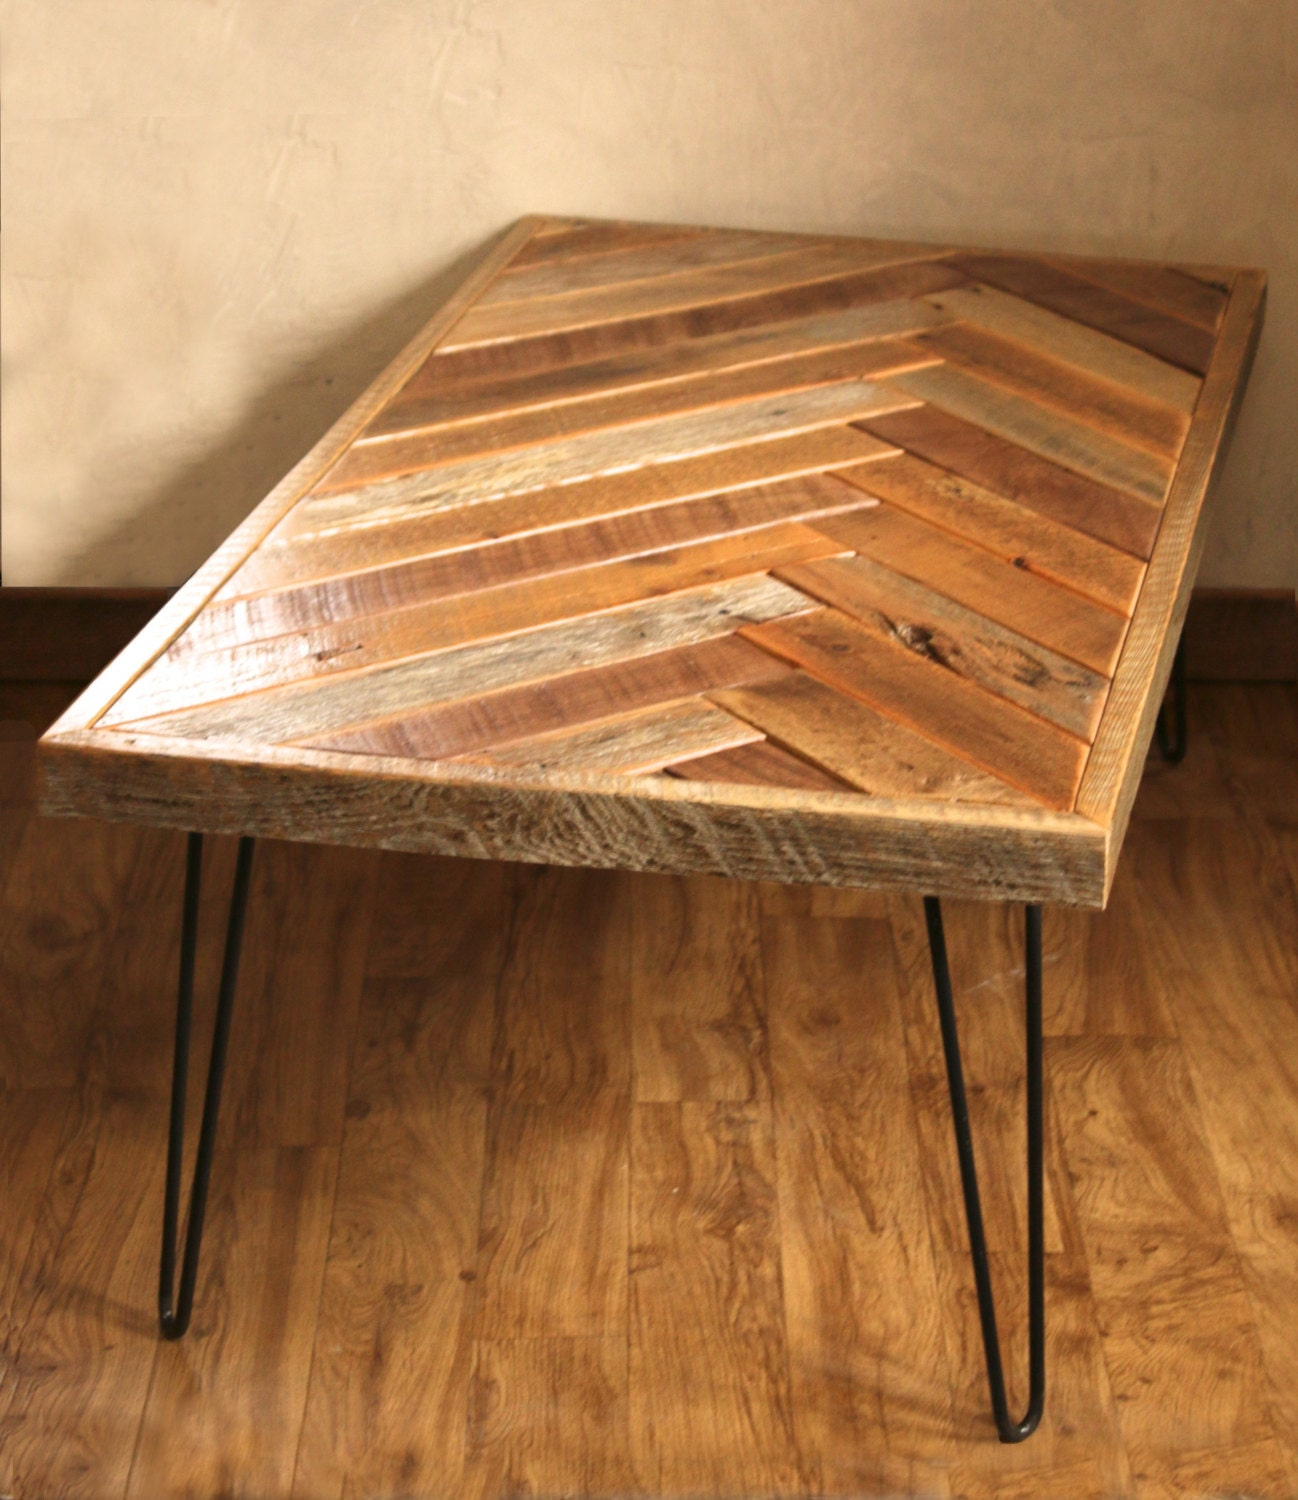 Barn wood coffee table herringbone table hairpin legs for Table design patterns